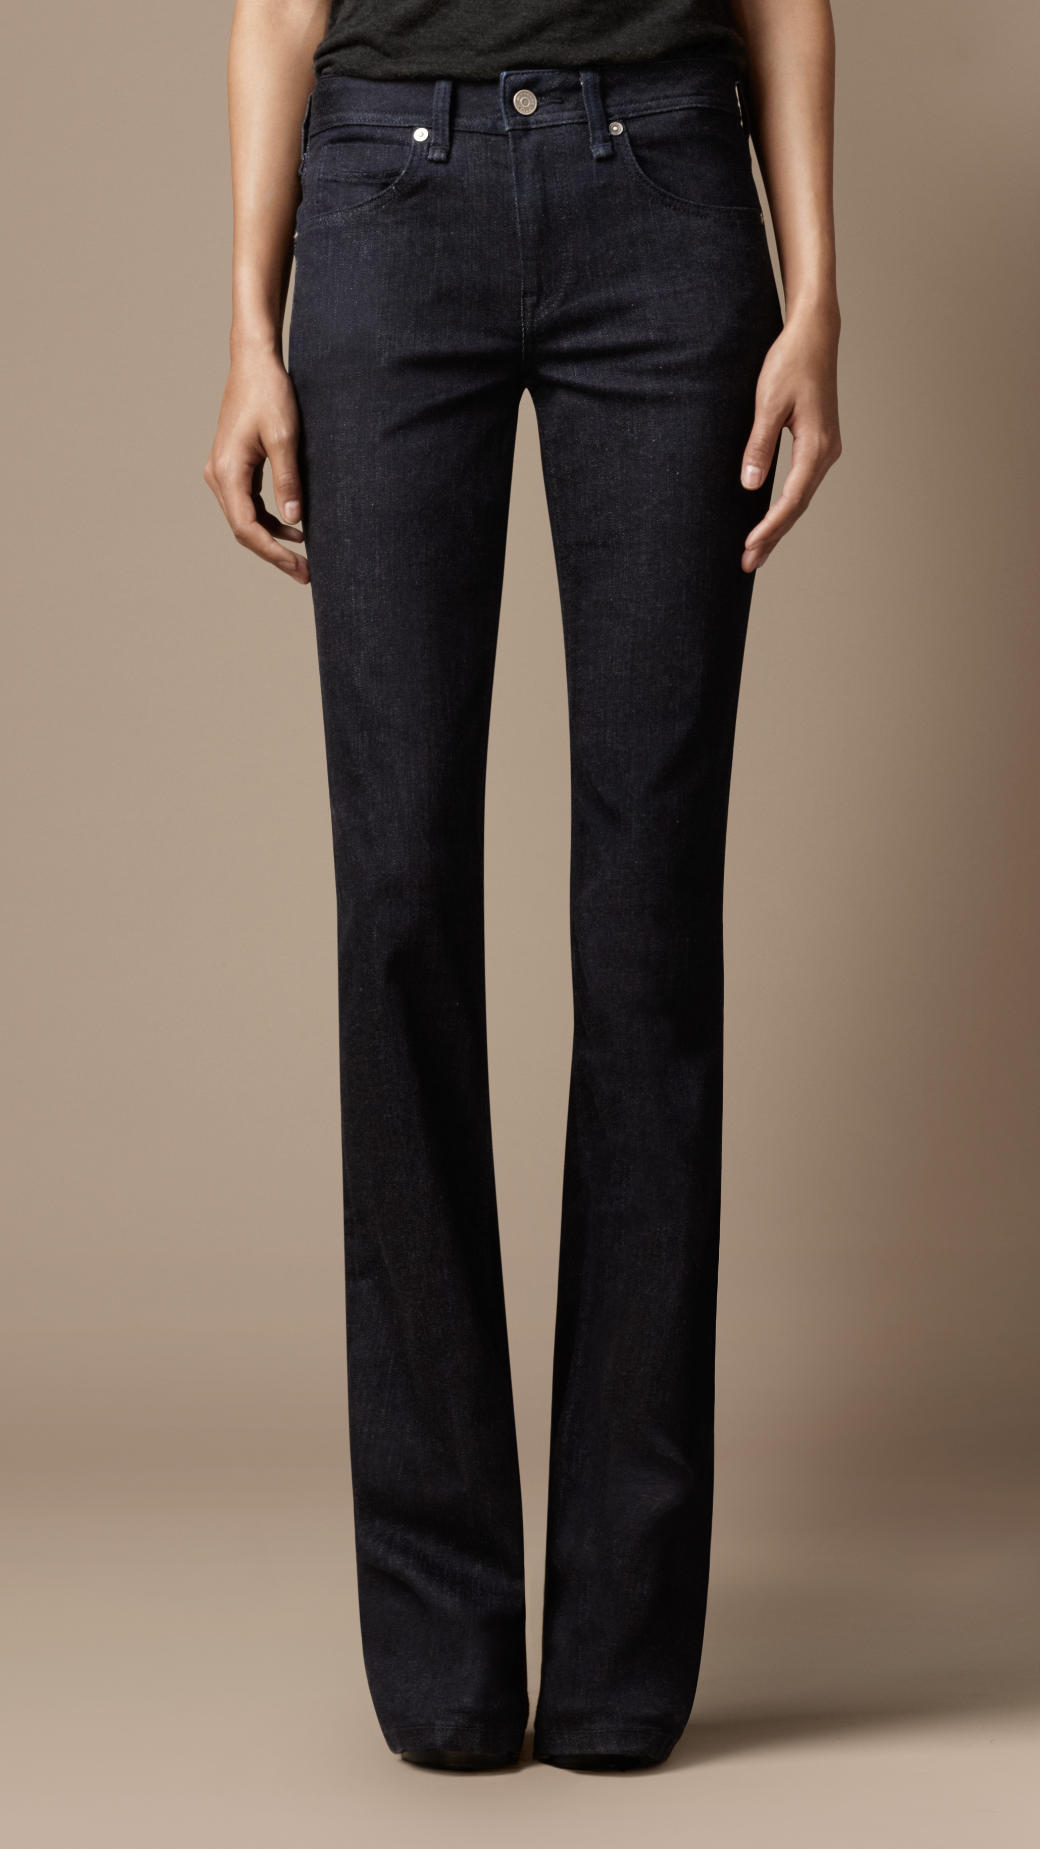 Burberry Chelsea Indigo Bootcut Jeans in Blue | Lyst